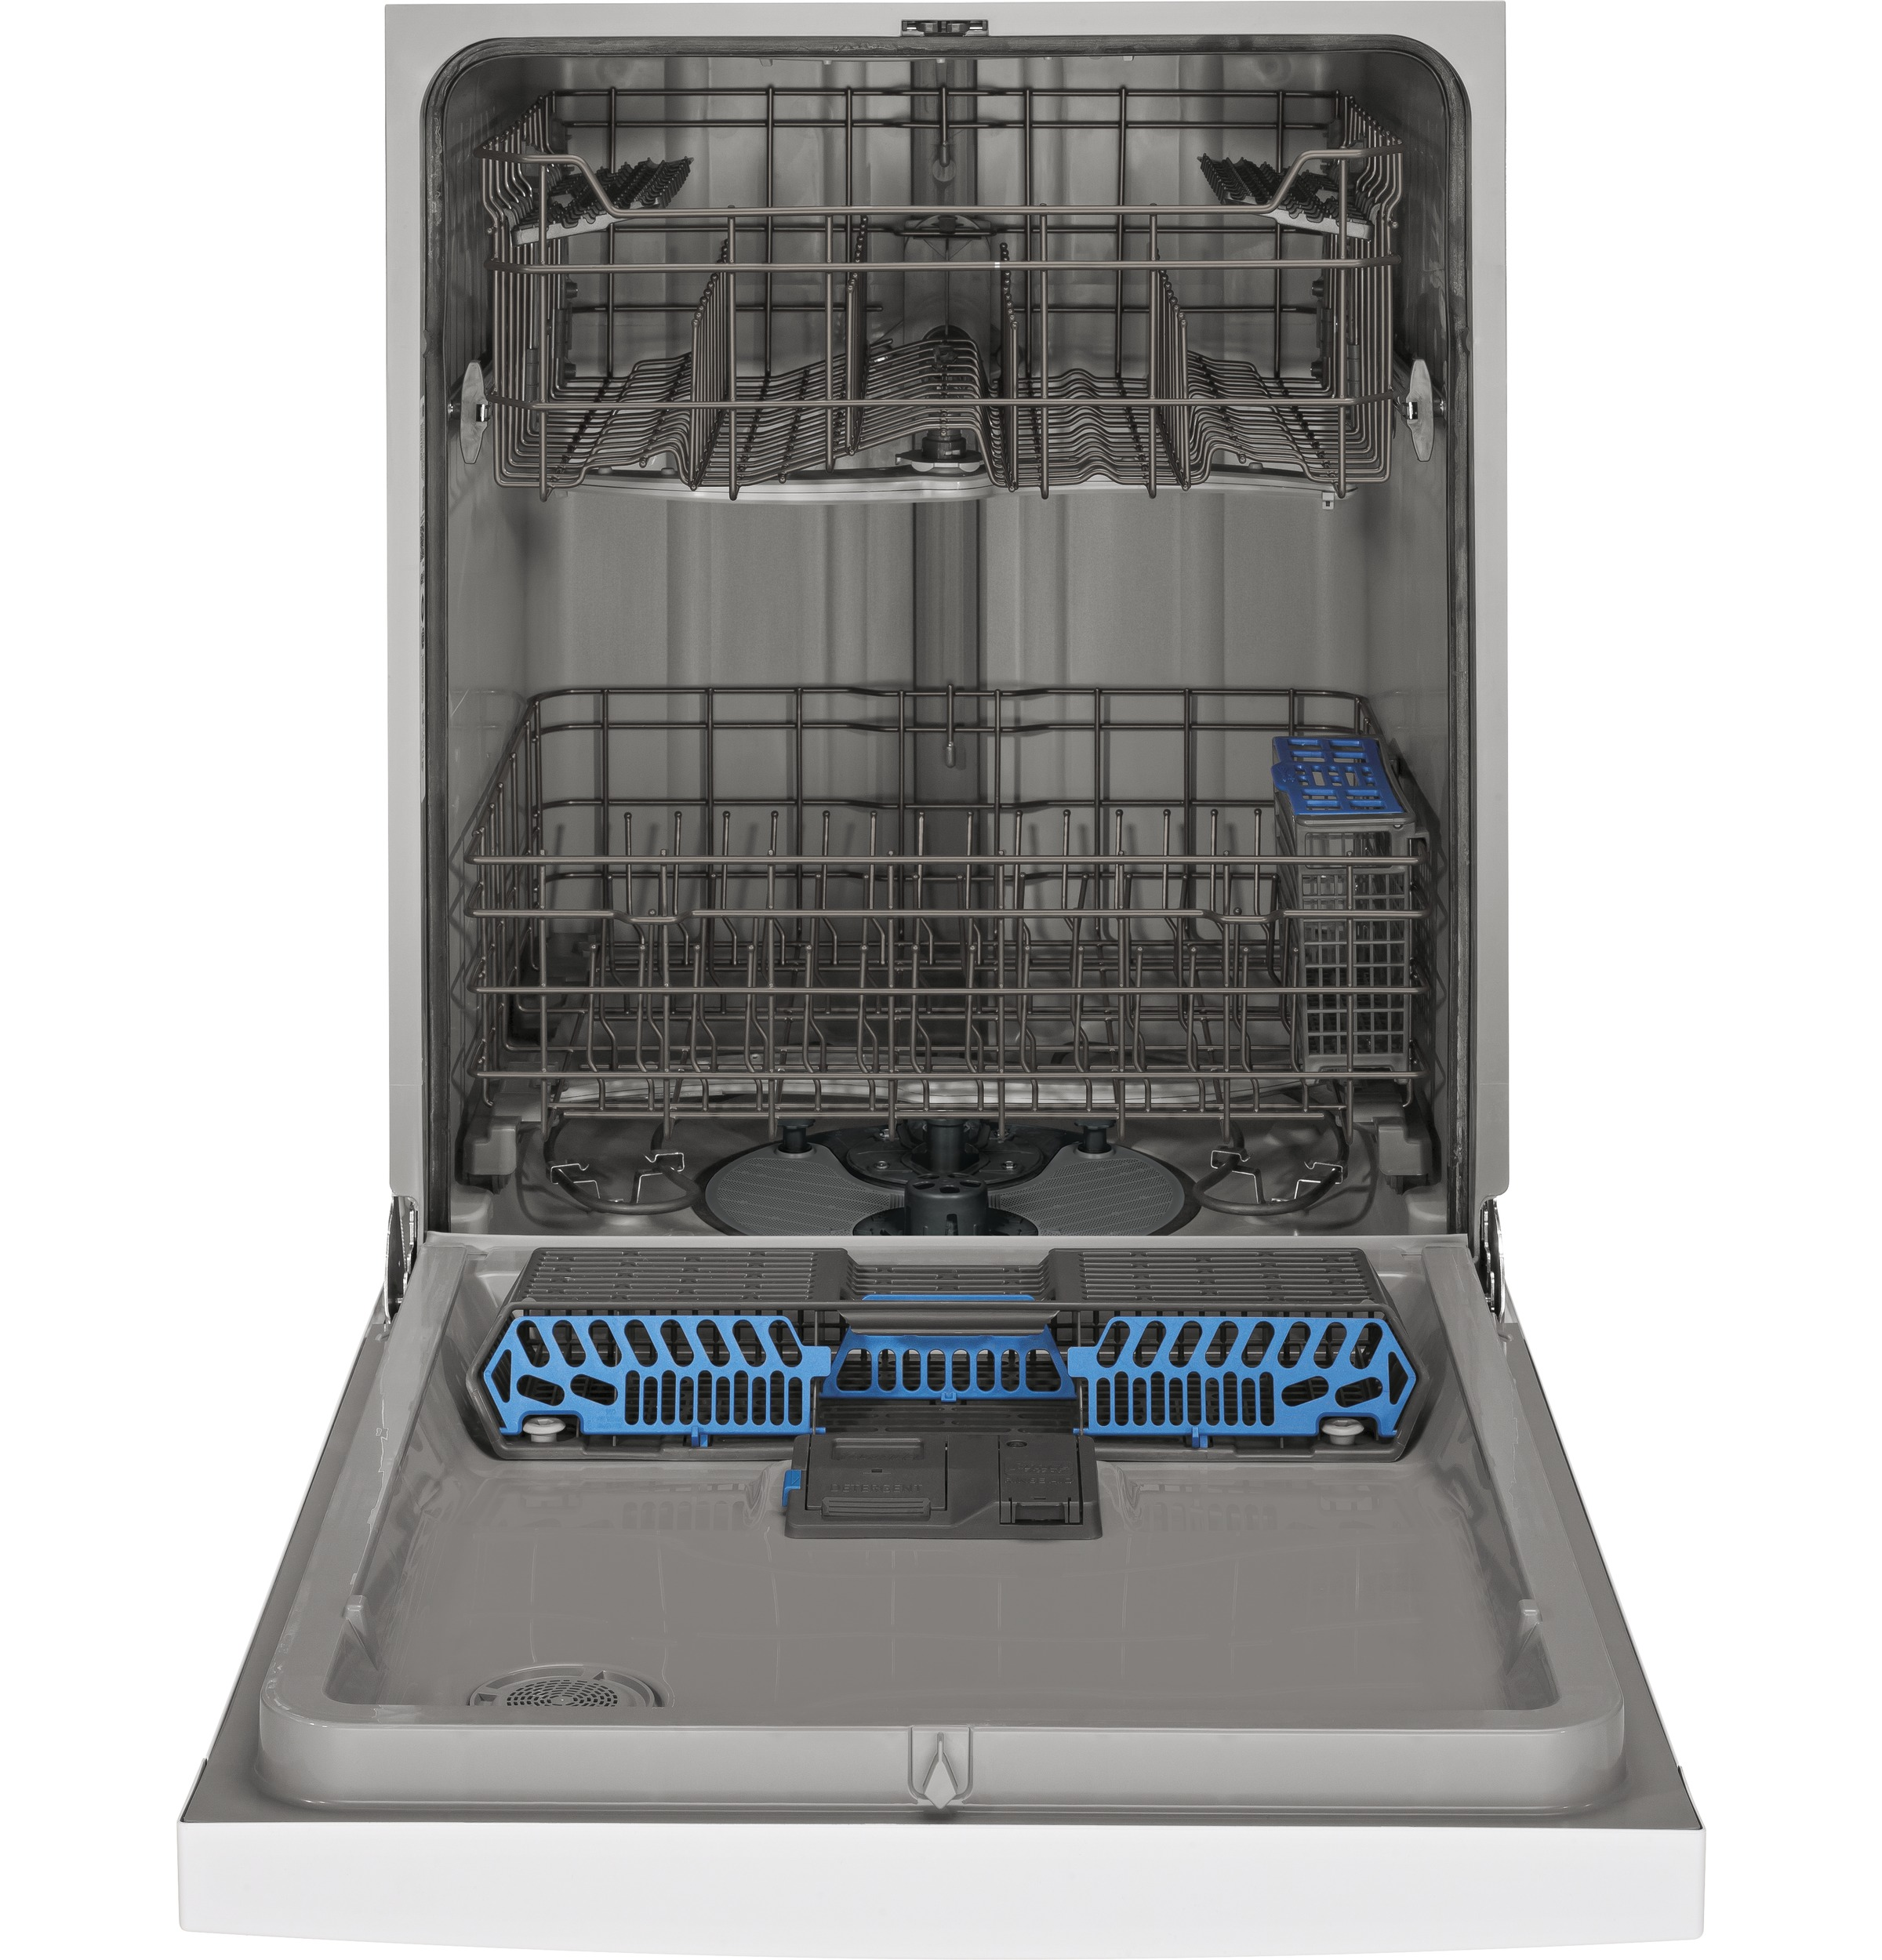 General Electric Dishwasher Troubleshooting Gear Dishwasher With Front Controls Gdf520pgdbb Ge Appliances